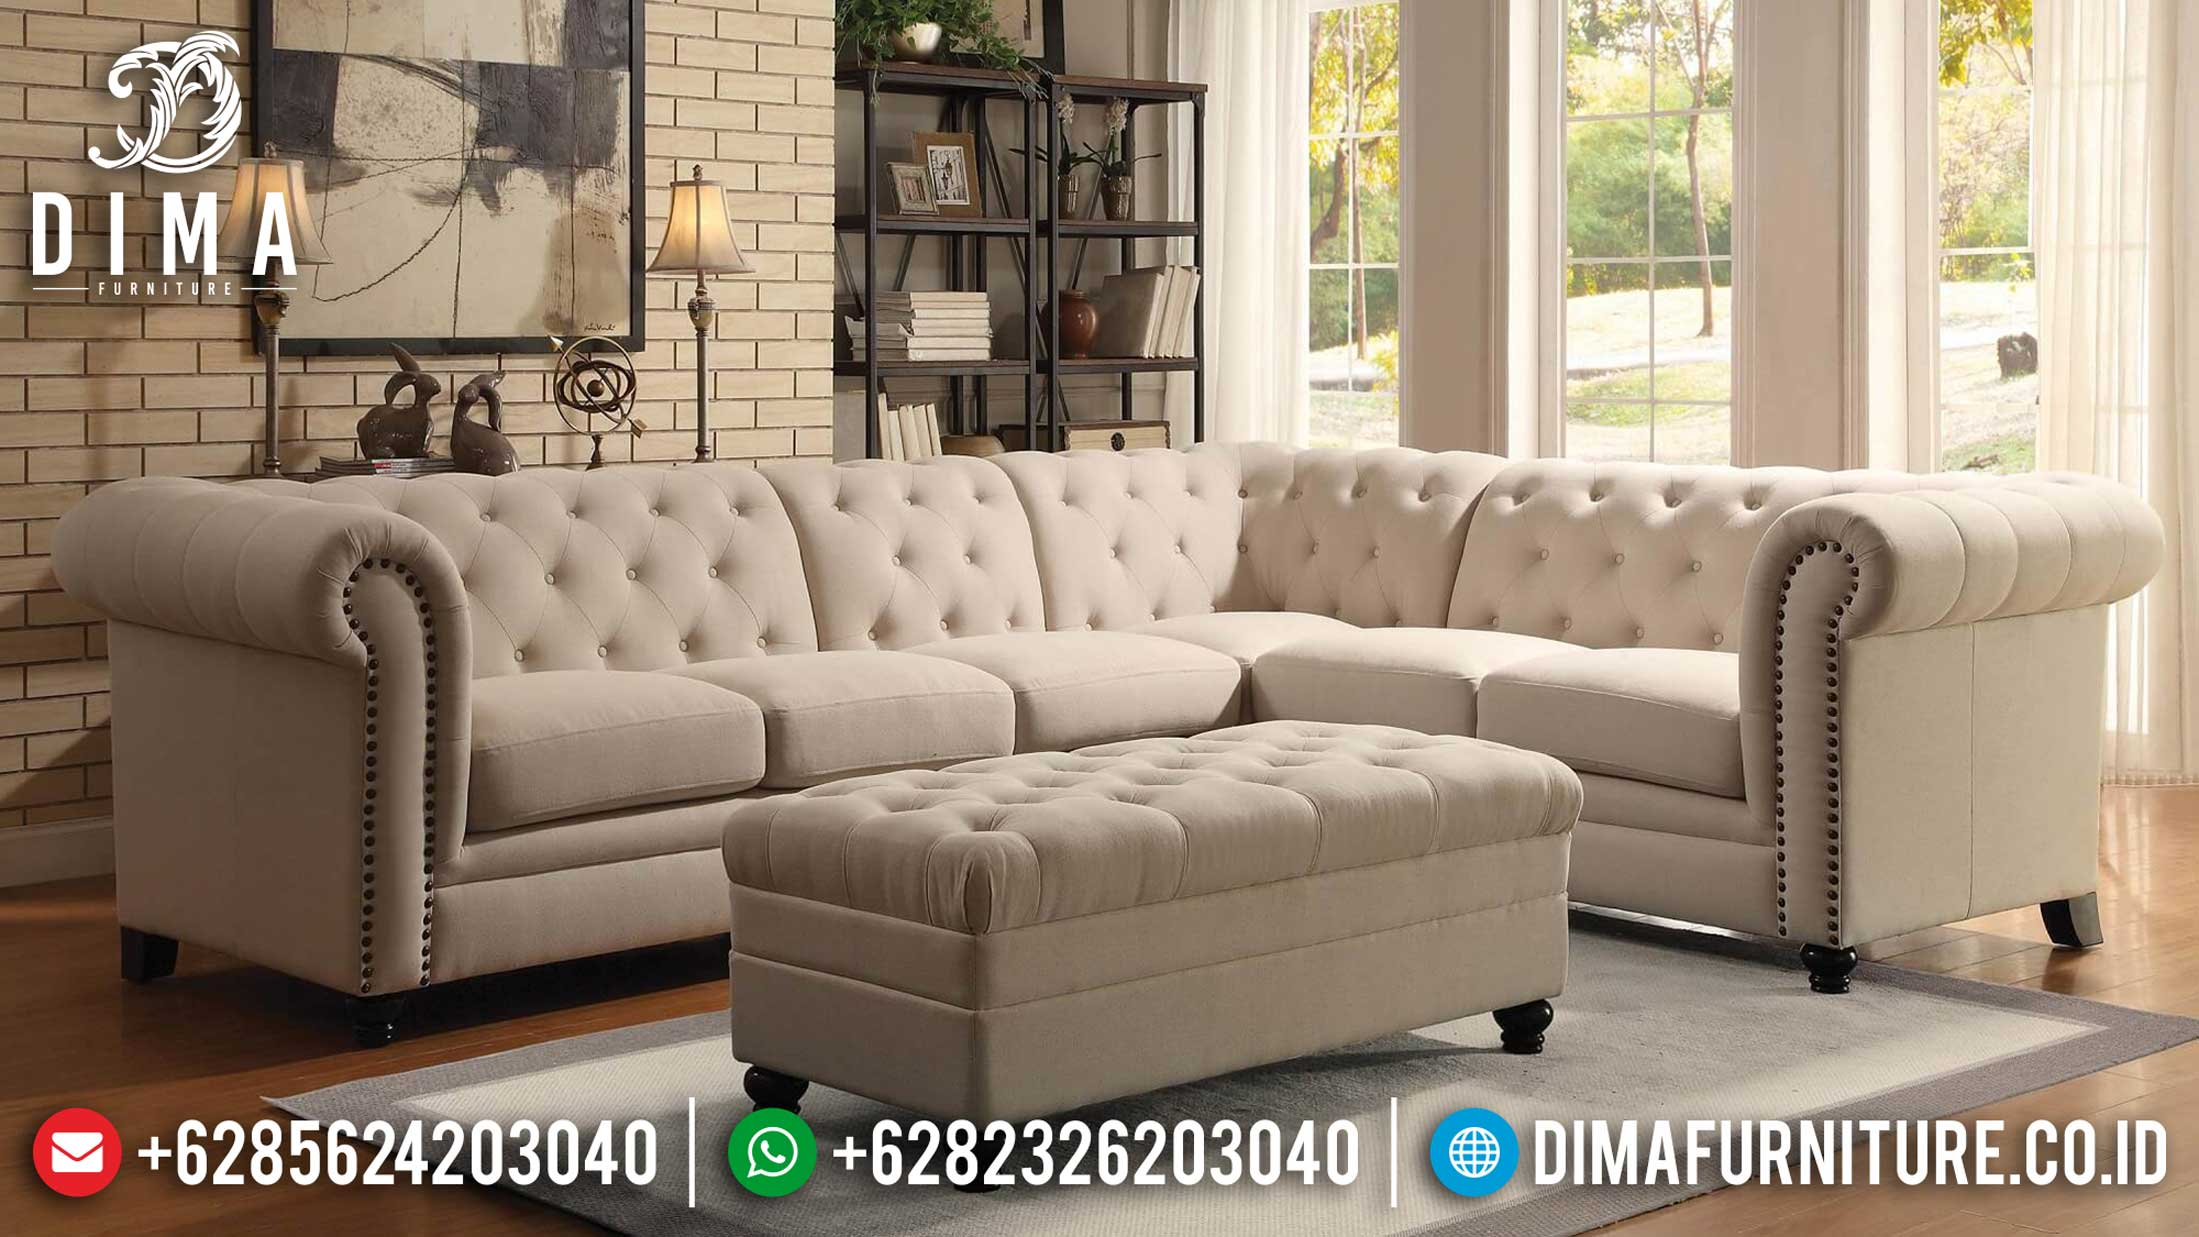 Harga Sofa Tamu Jepara Chesterfield Natural Jati Classic Best Seller TTJ-1271